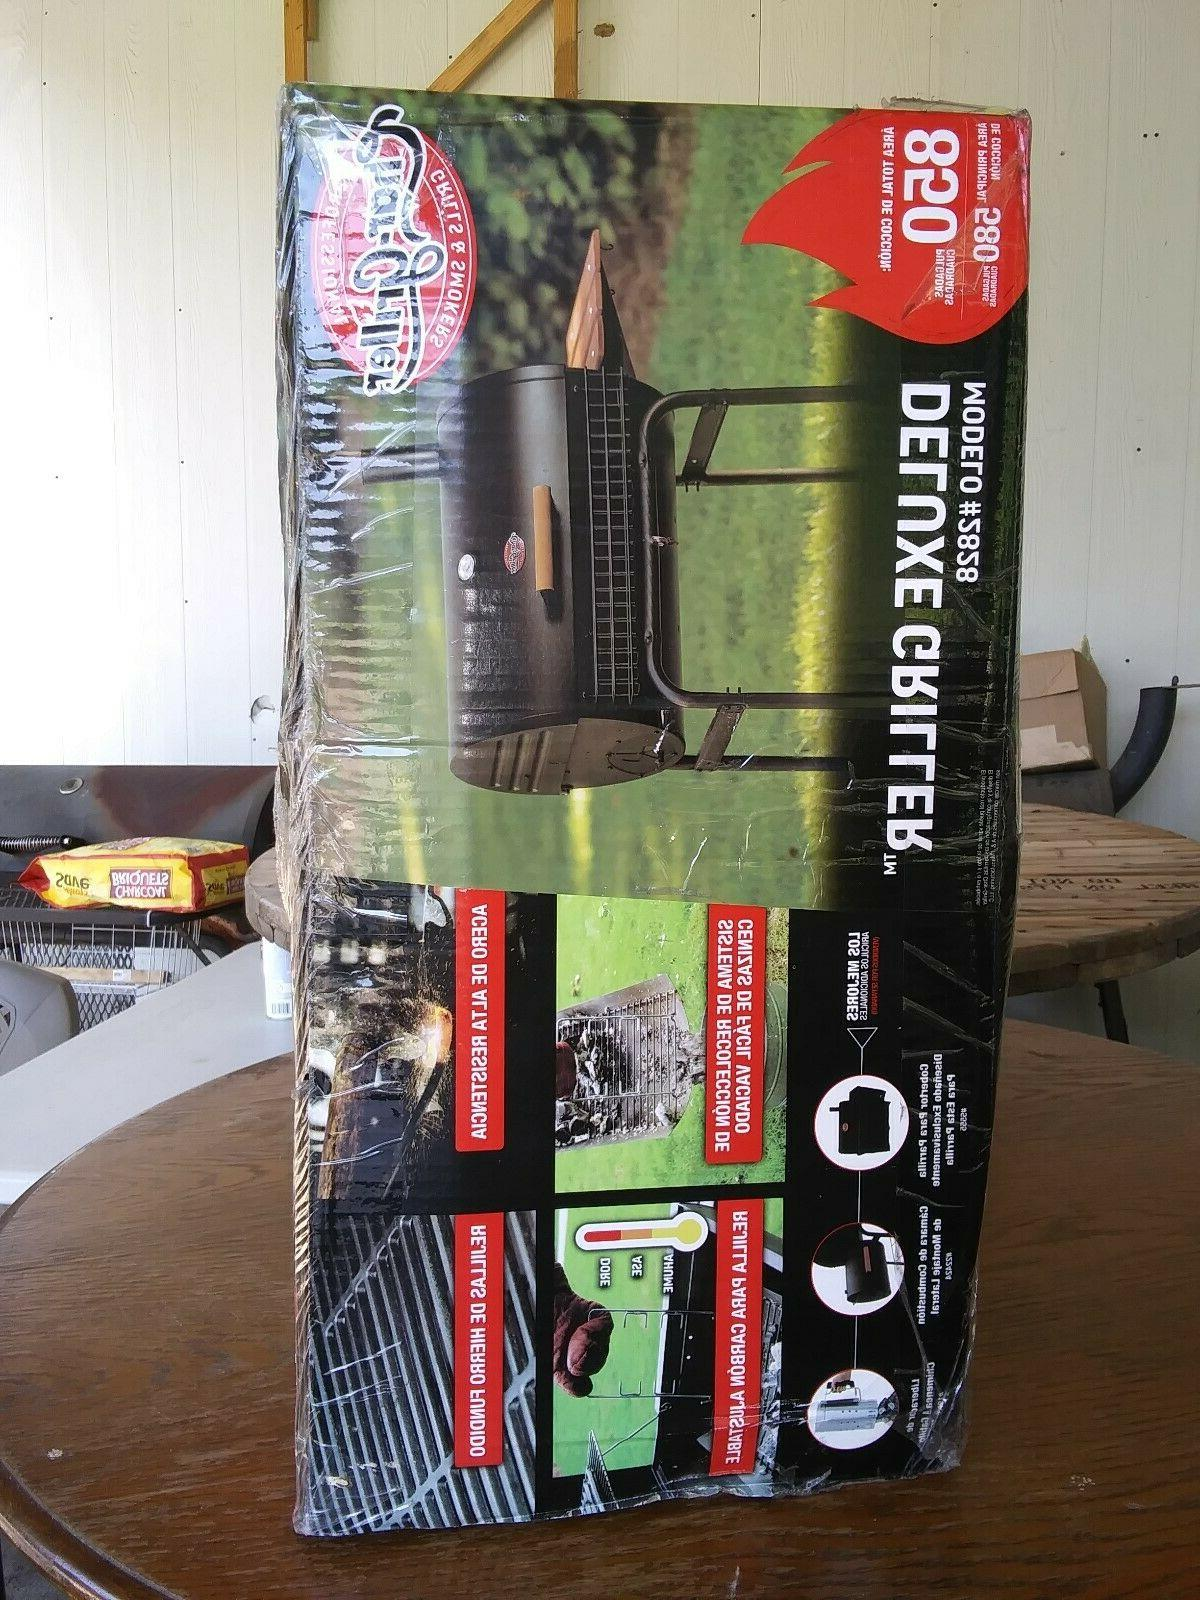 GRILL CHAR-GRILLER 2828 BRAND THE